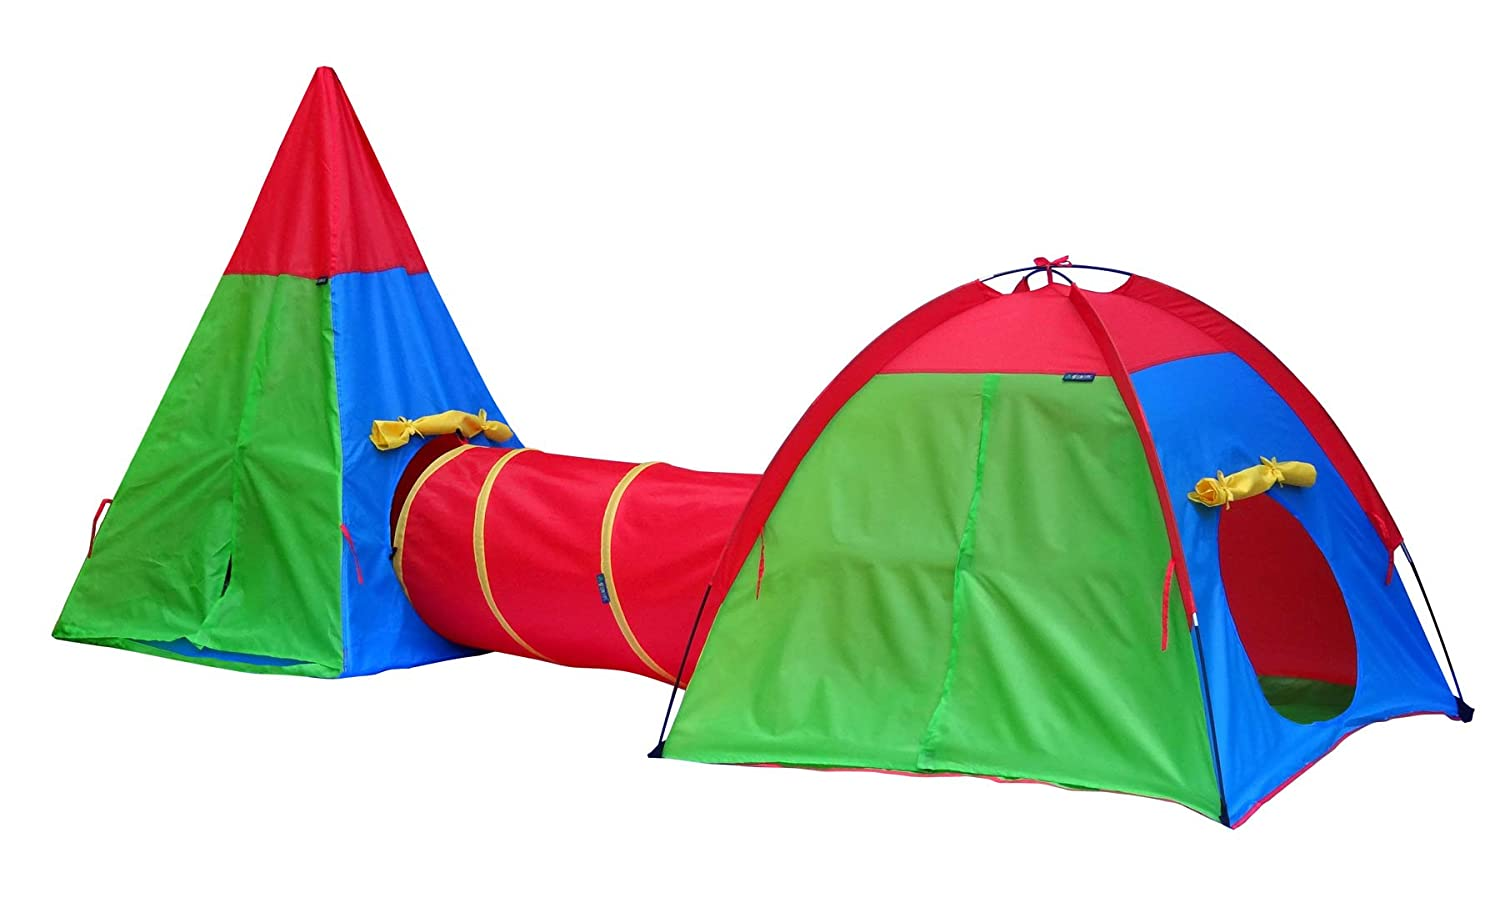 Amazon.com Giga Tent Action Dome and Teepee with Tunnel Play Tent Set Toys u0026 Games  sc 1 st  Amazon.com & Amazon.com: Giga Tent Action Dome and Teepee with Tunnel Play Tent ...